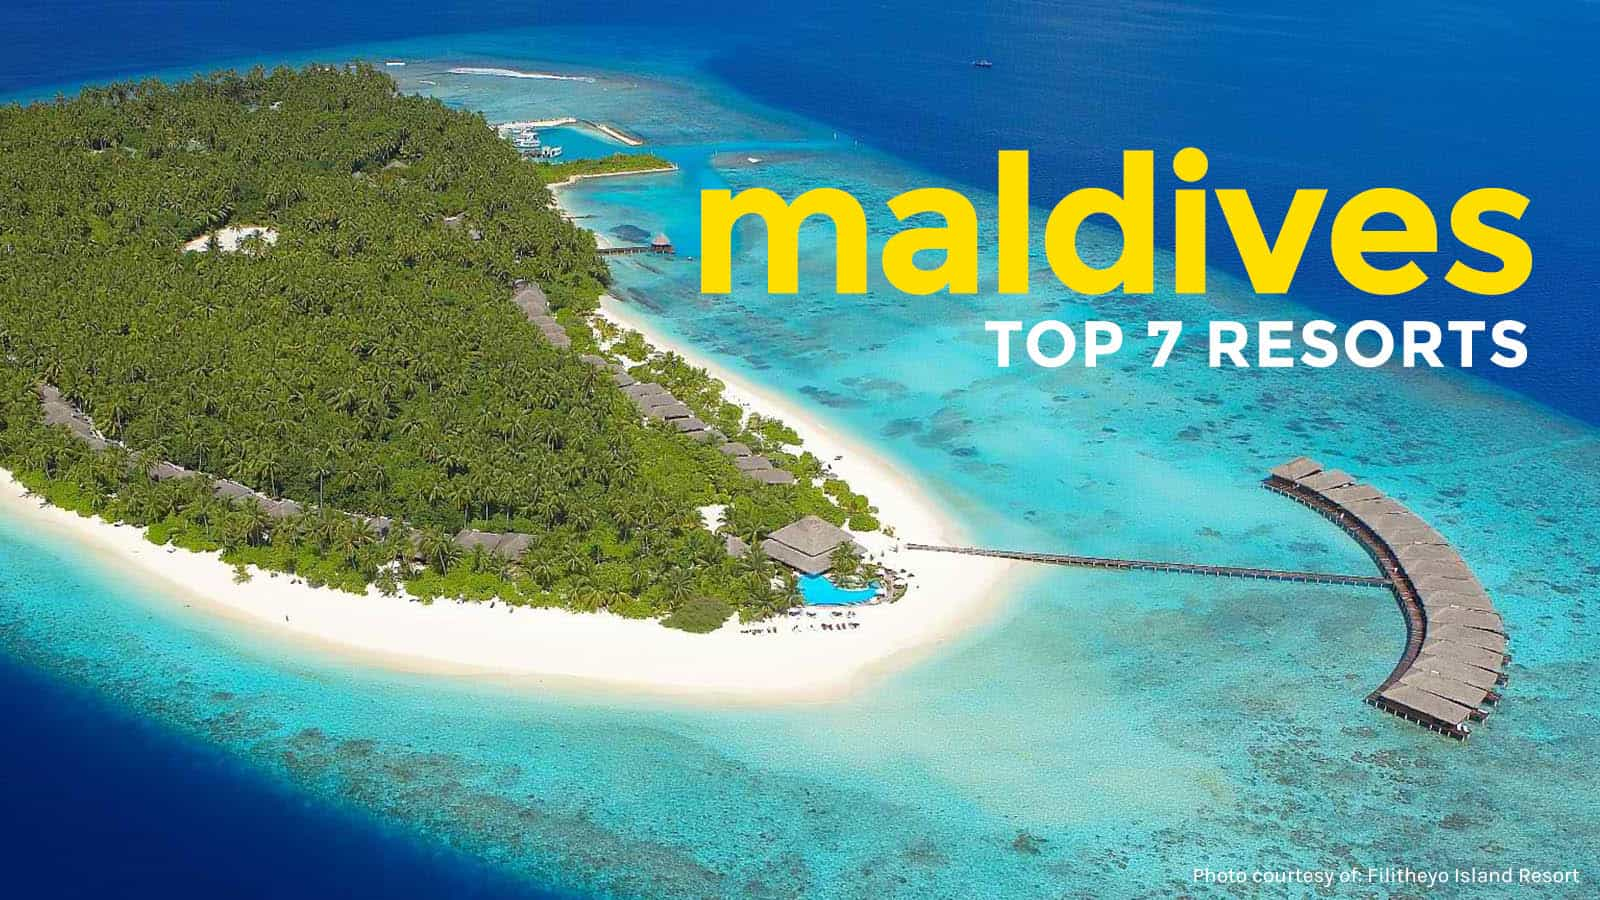 Maldives Top 7 Resorts Under 200